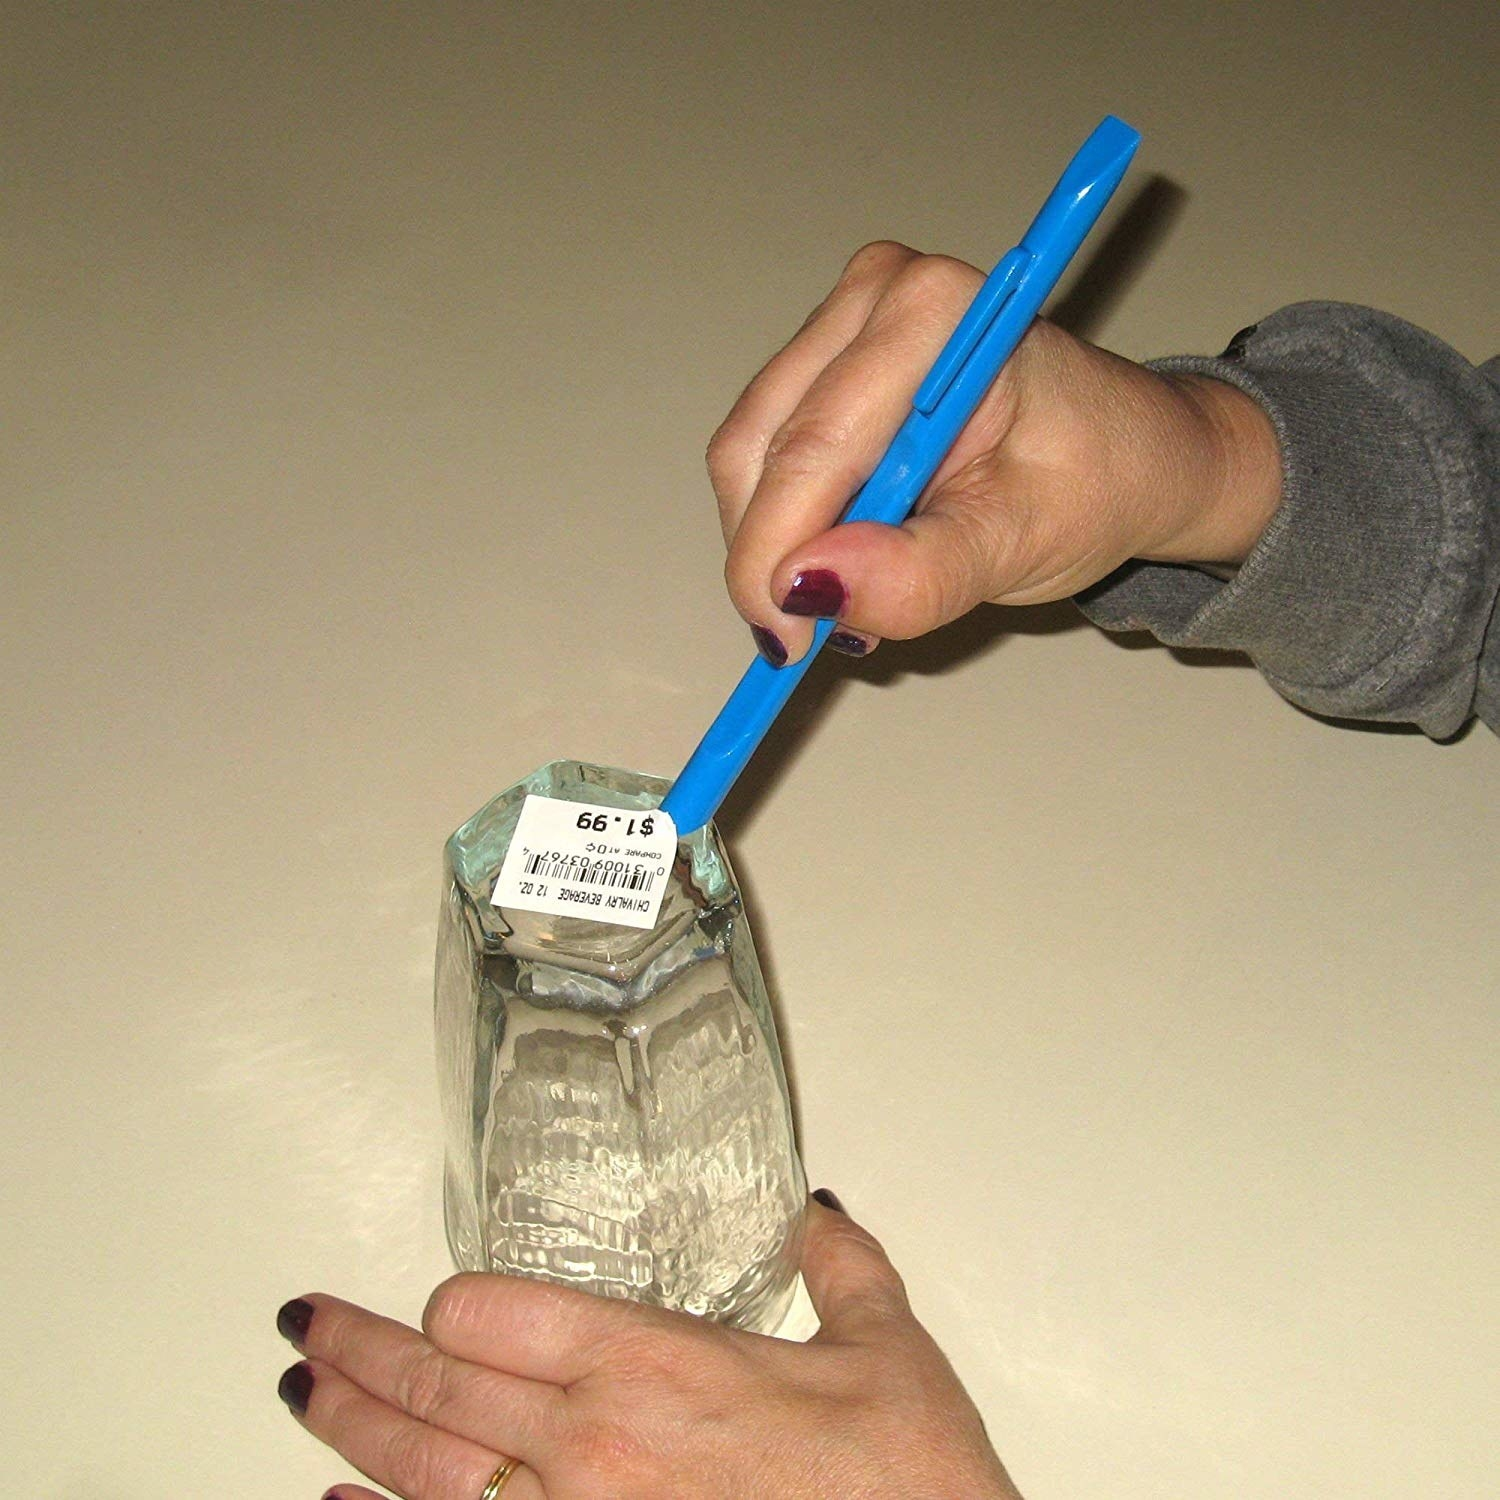 A hand using the scraper to remove a sticker from a glass